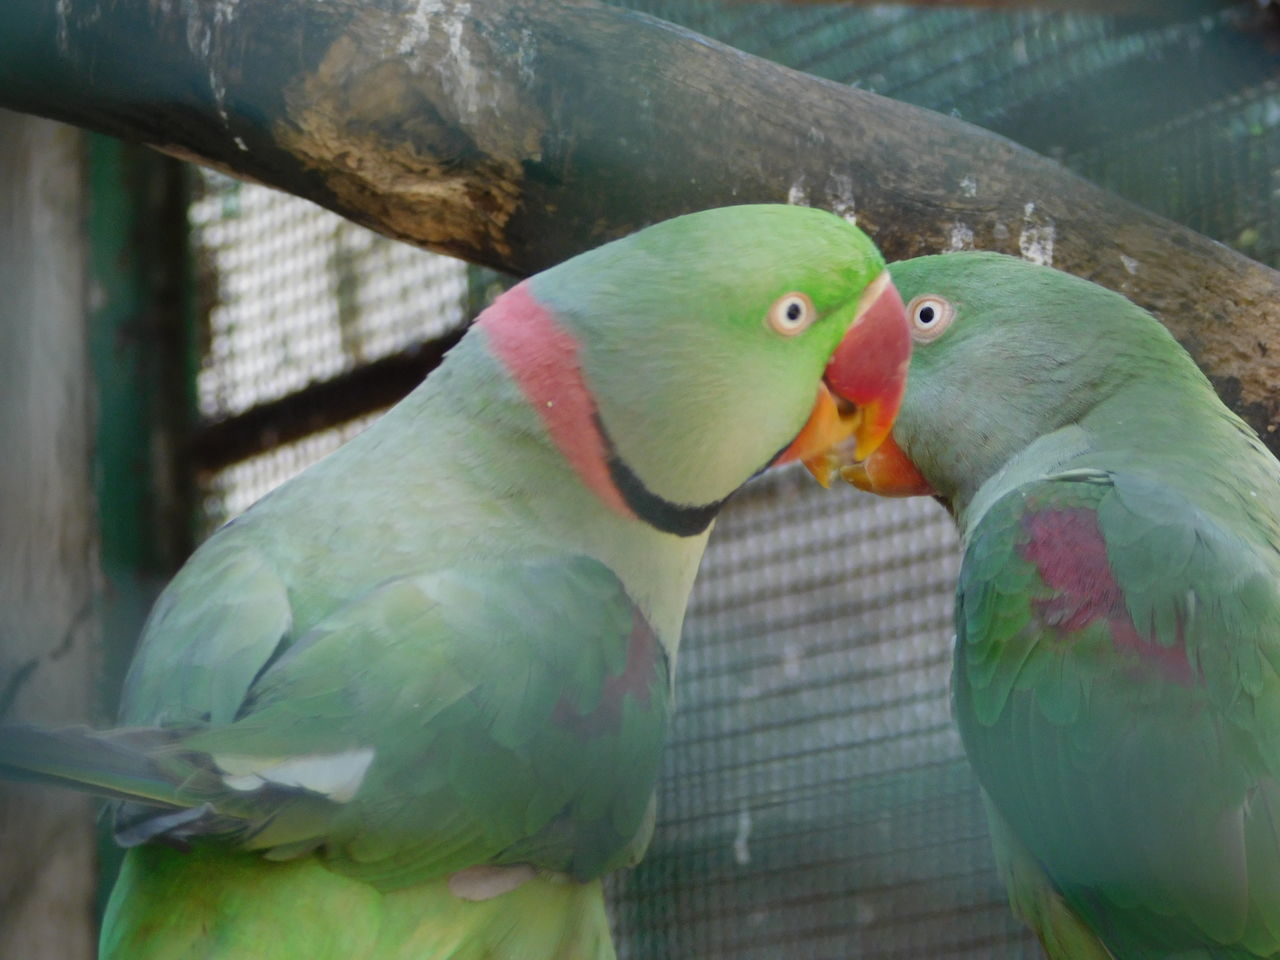 bird, animal themes, two animals, animals in the wild, parrot, animal wildlife, nature, green color, no people, day, perching, cage, close-up, outdoors, beauty in nature, togetherness, mammal